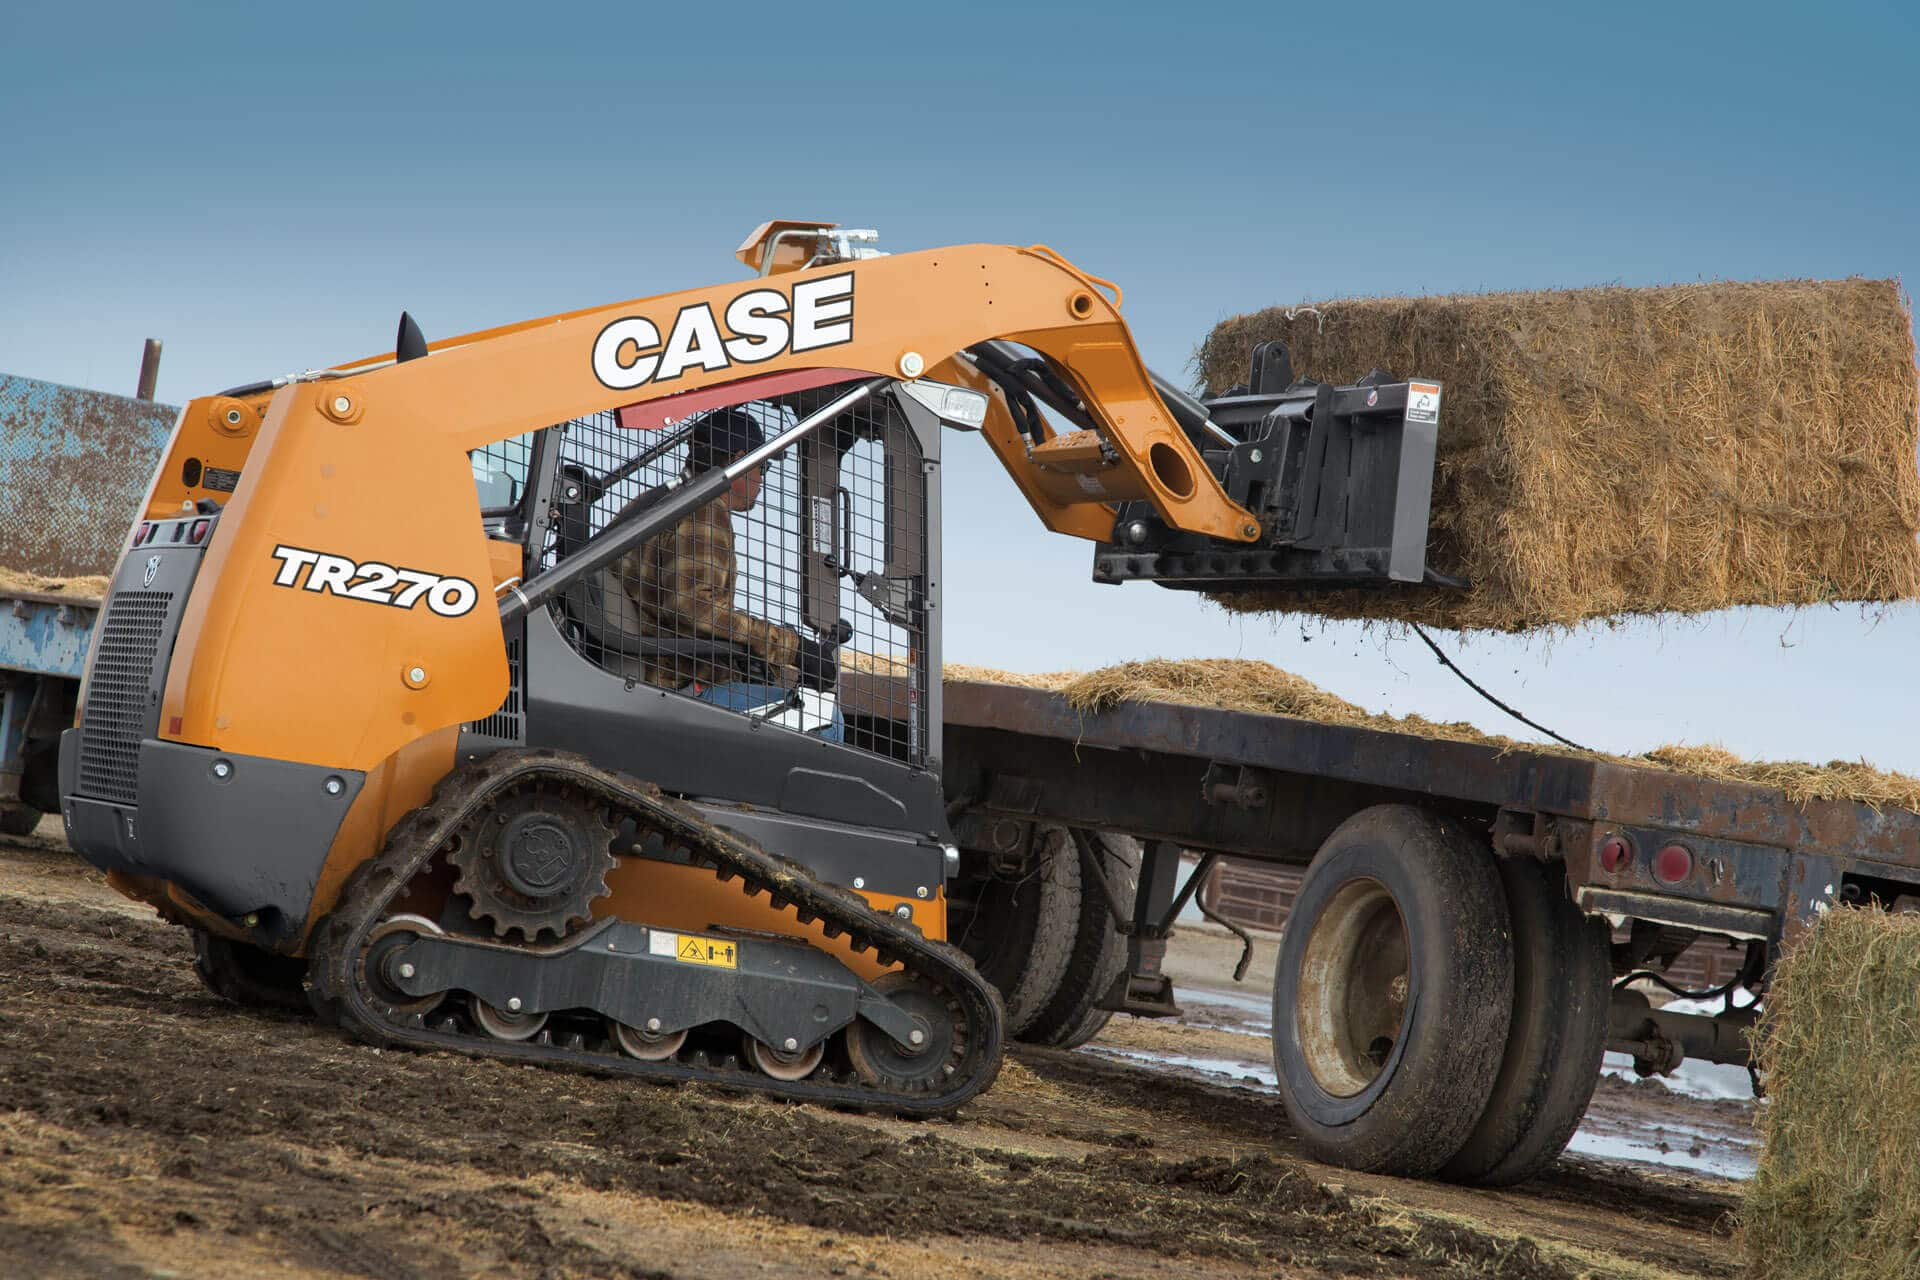 CASE TR270 Compact Track Loader | CASE Construction Equipment